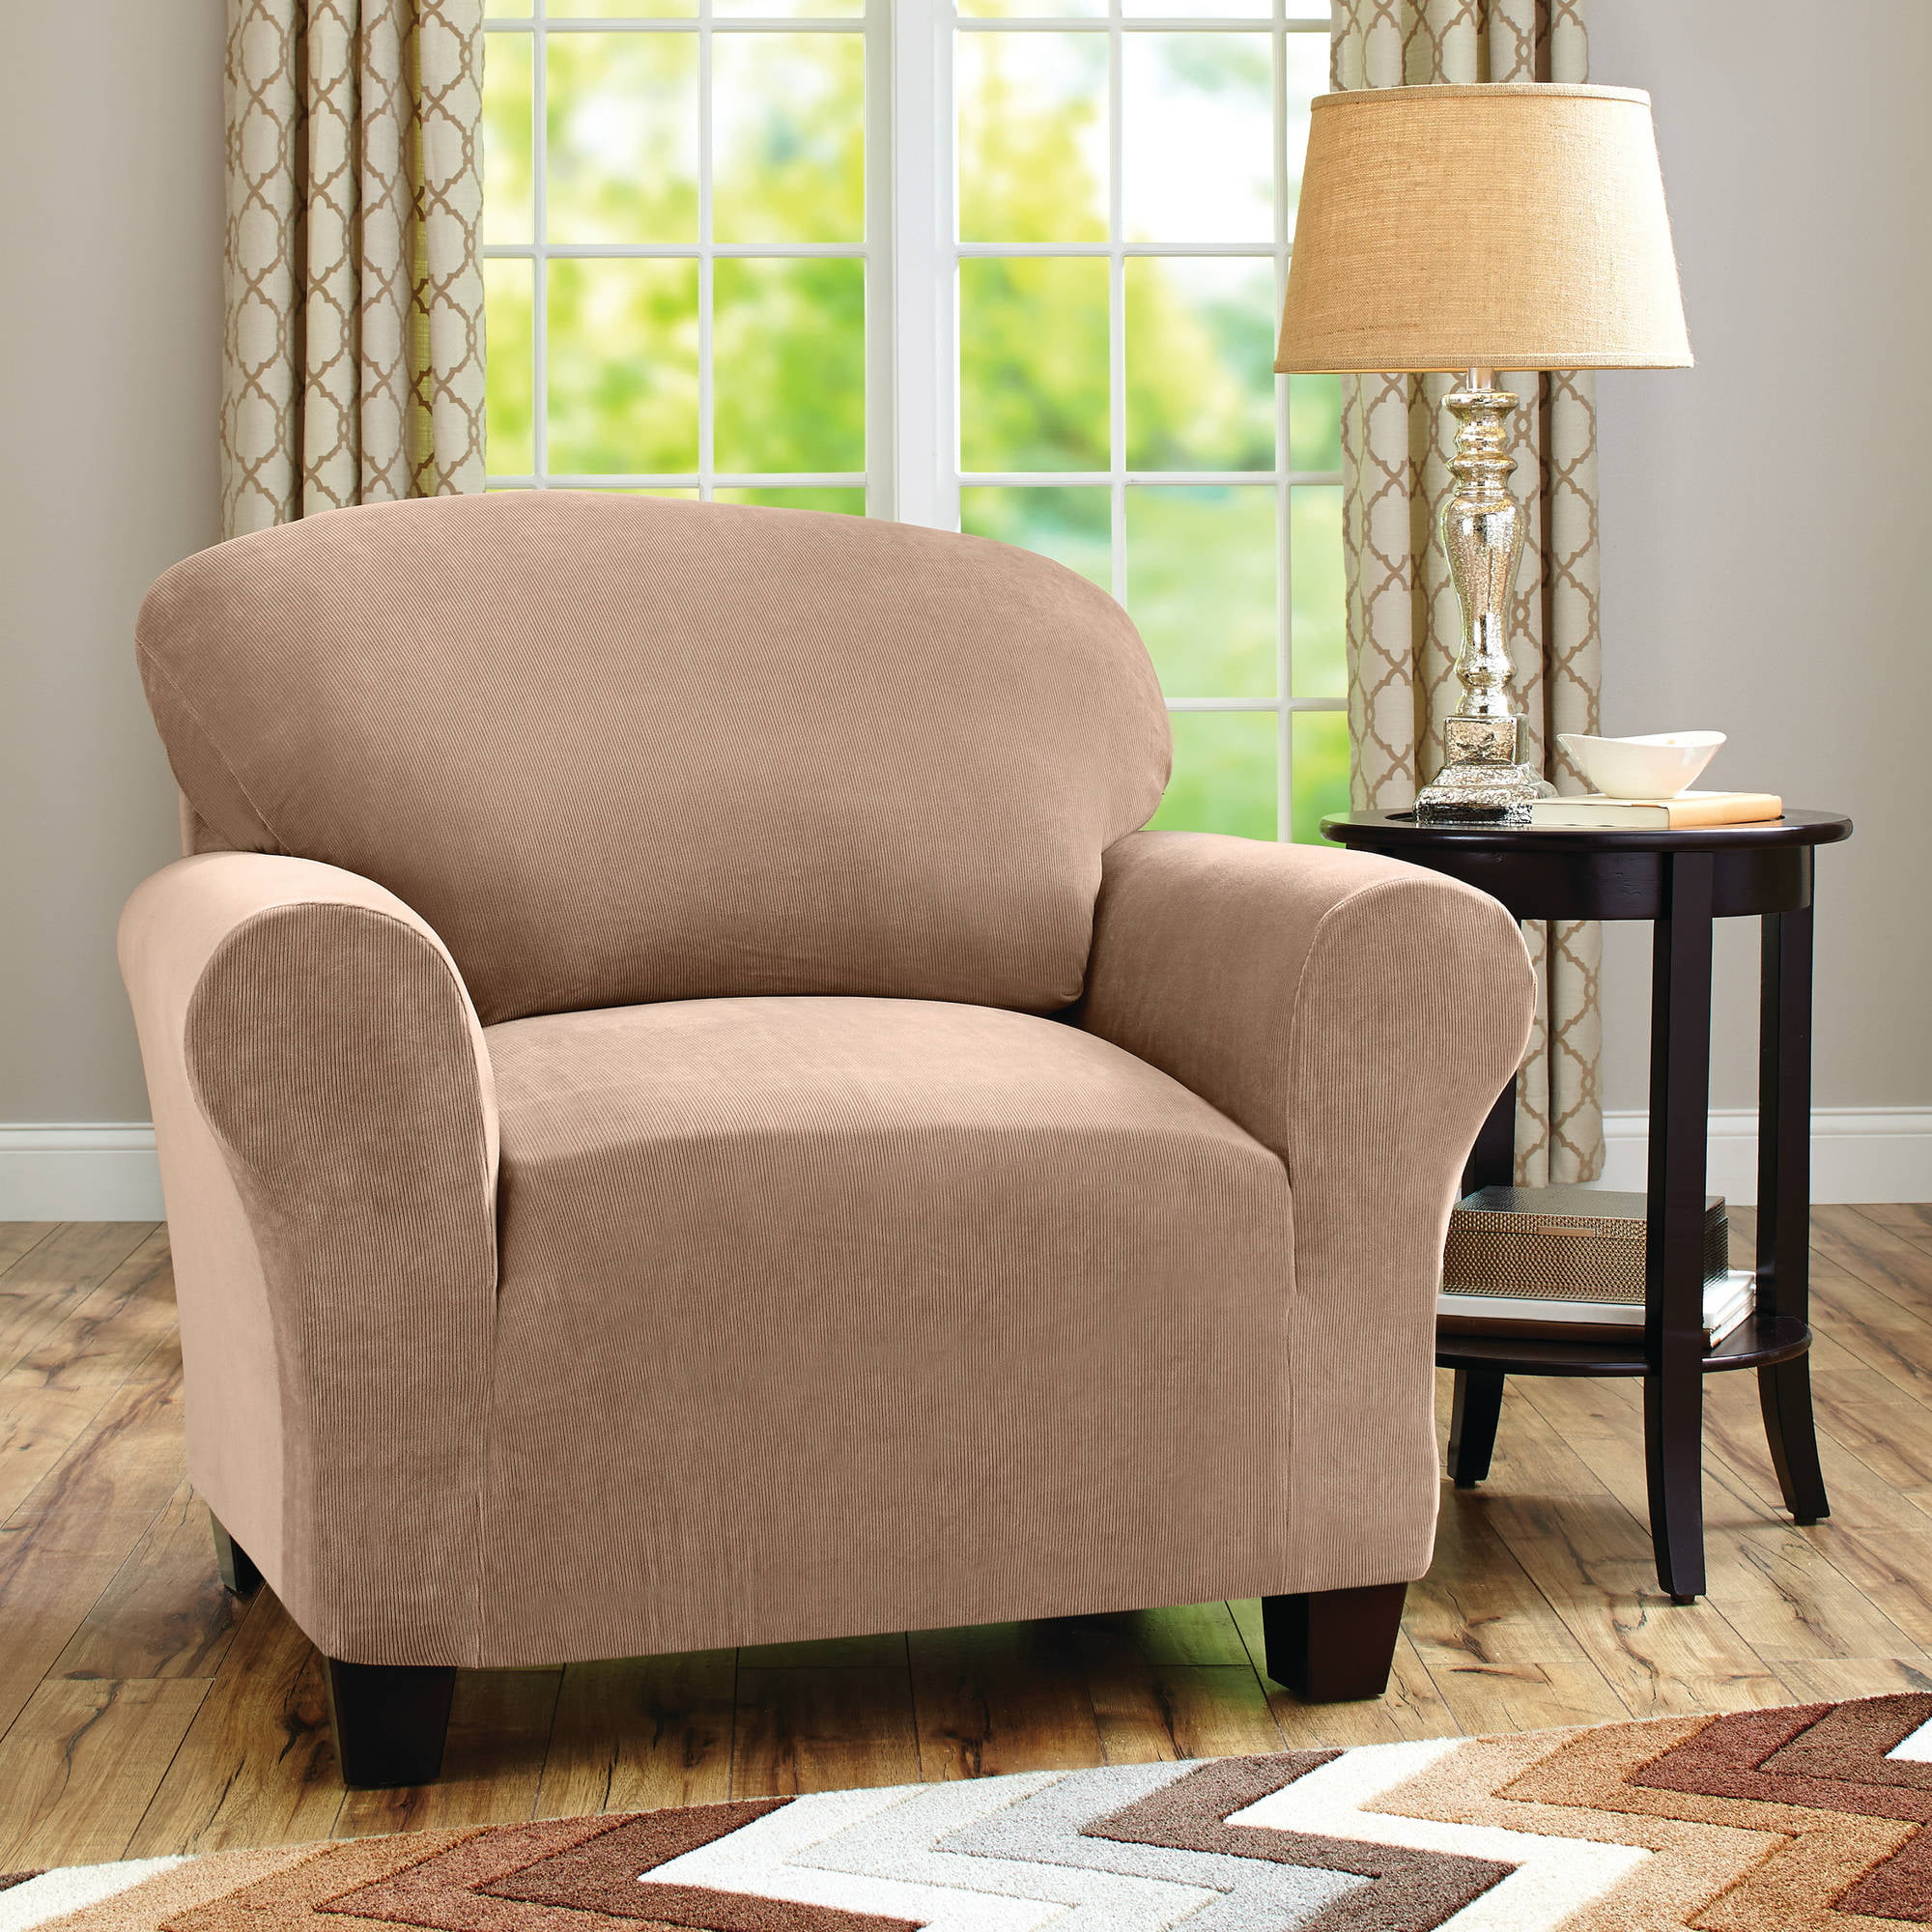 stretch relaxation slipcover looking and recliner loveseat slipcovers in amazon shower extraordinary sure covers sofa walmart chair comfort fit good at wing pique jpg reclining couch